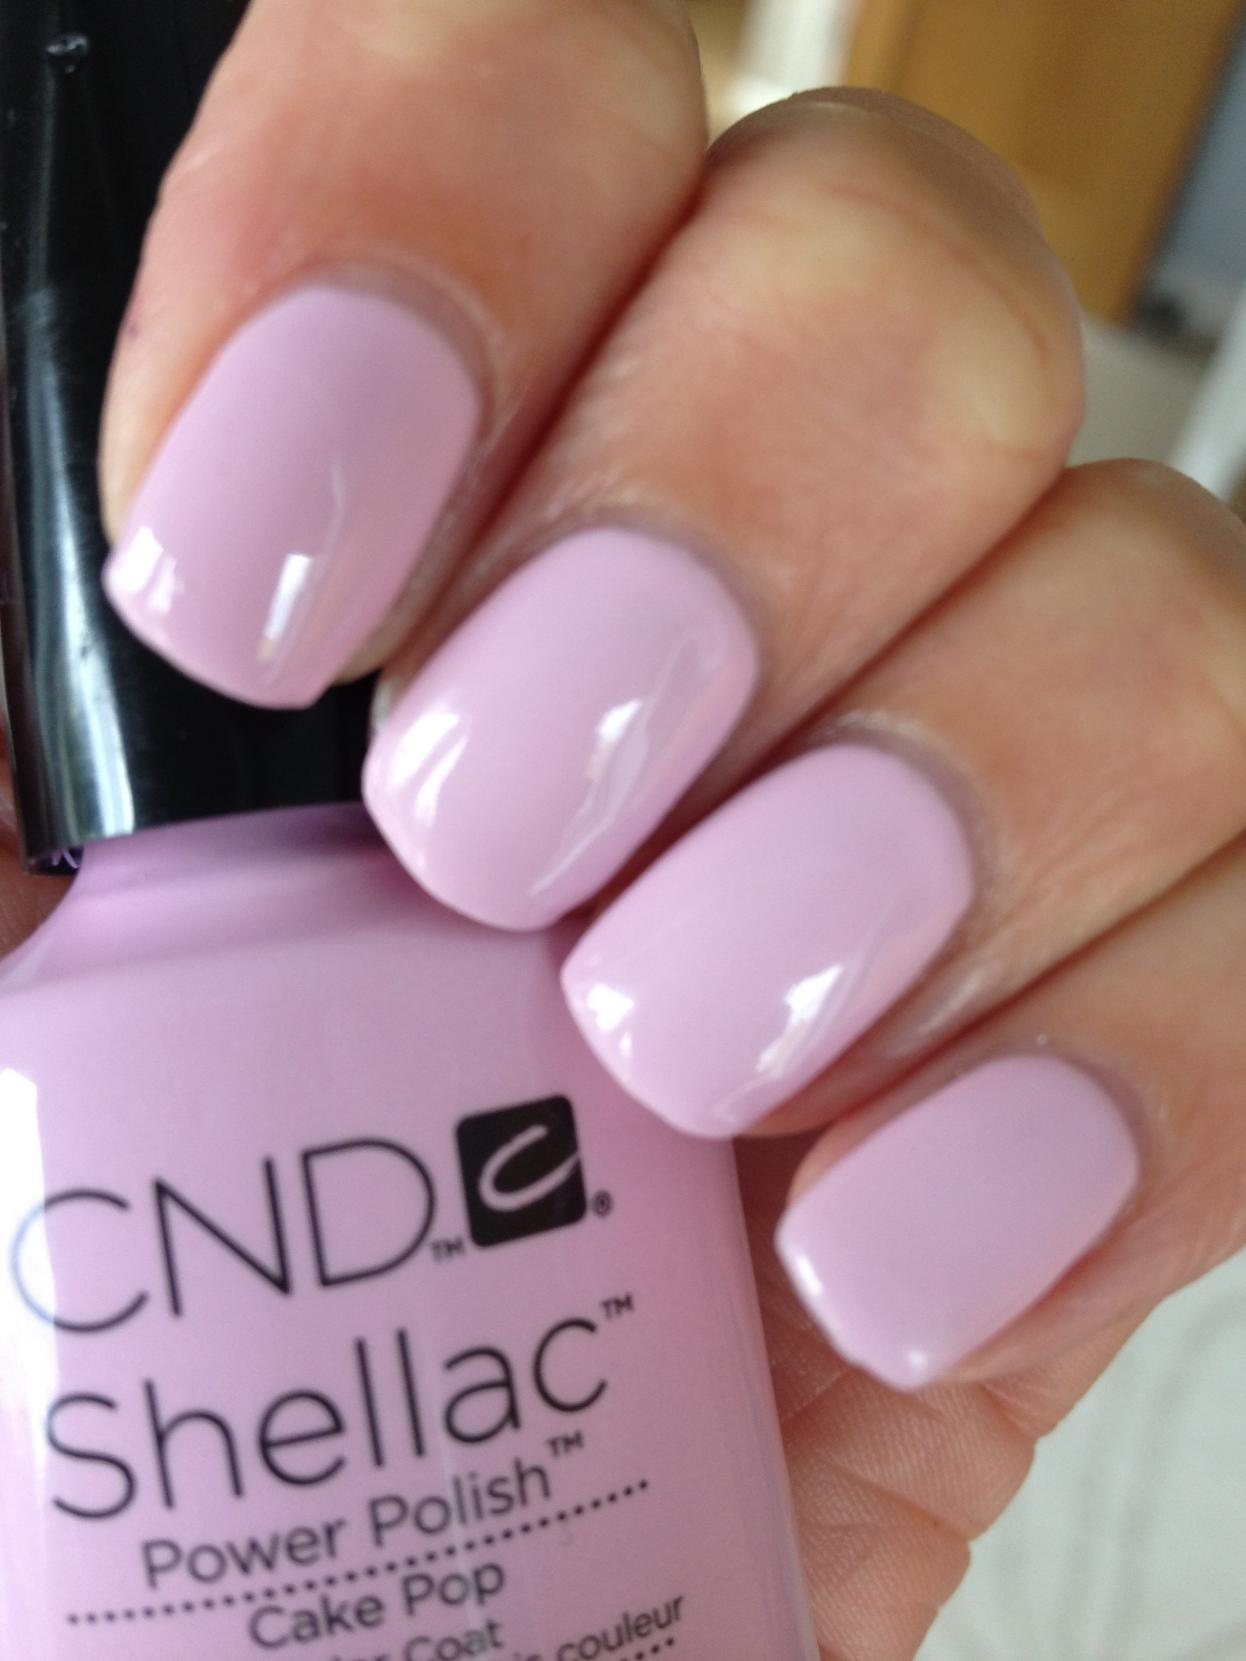 cnd shellac sweet dream collection cake pop e lilac longing nails 4 passion. Black Bedroom Furniture Sets. Home Design Ideas